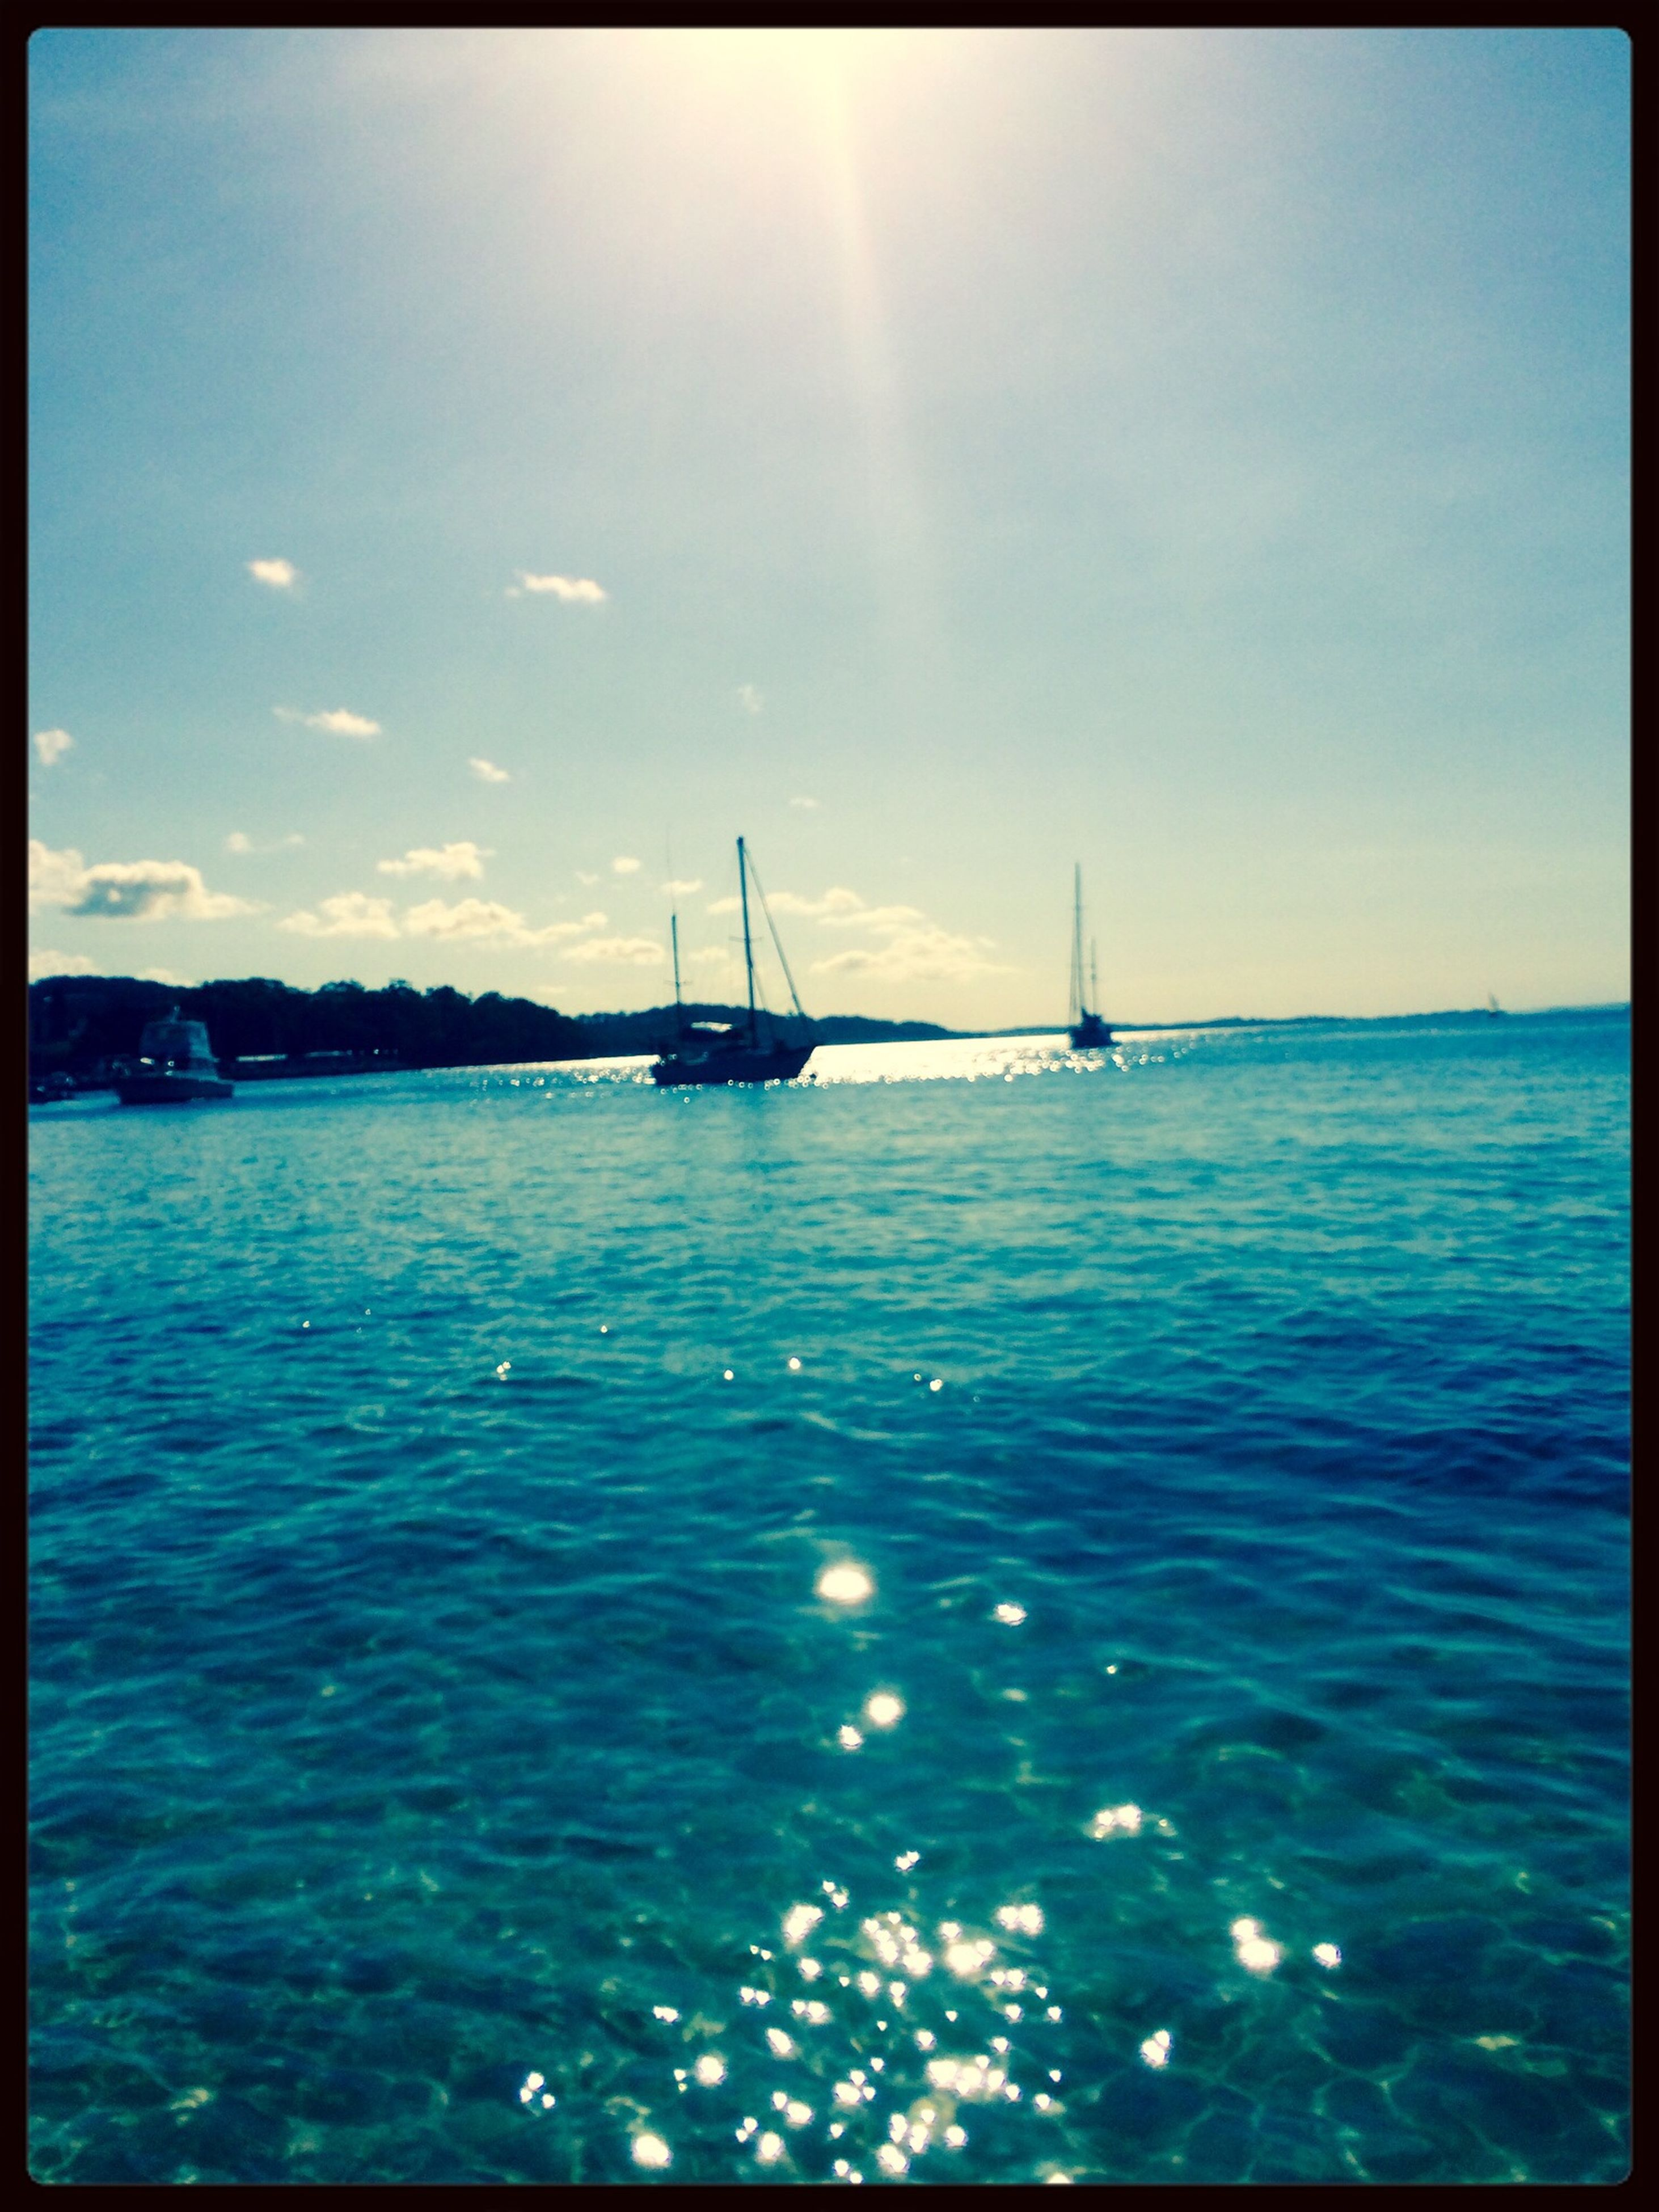 water, sea, nautical vessel, transportation, mode of transport, sky, boat, horizon over water, tranquil scene, sun, tranquility, scenics, sunlight, beauty in nature, blue, waterfront, transfer print, nature, sailboat, sunbeam